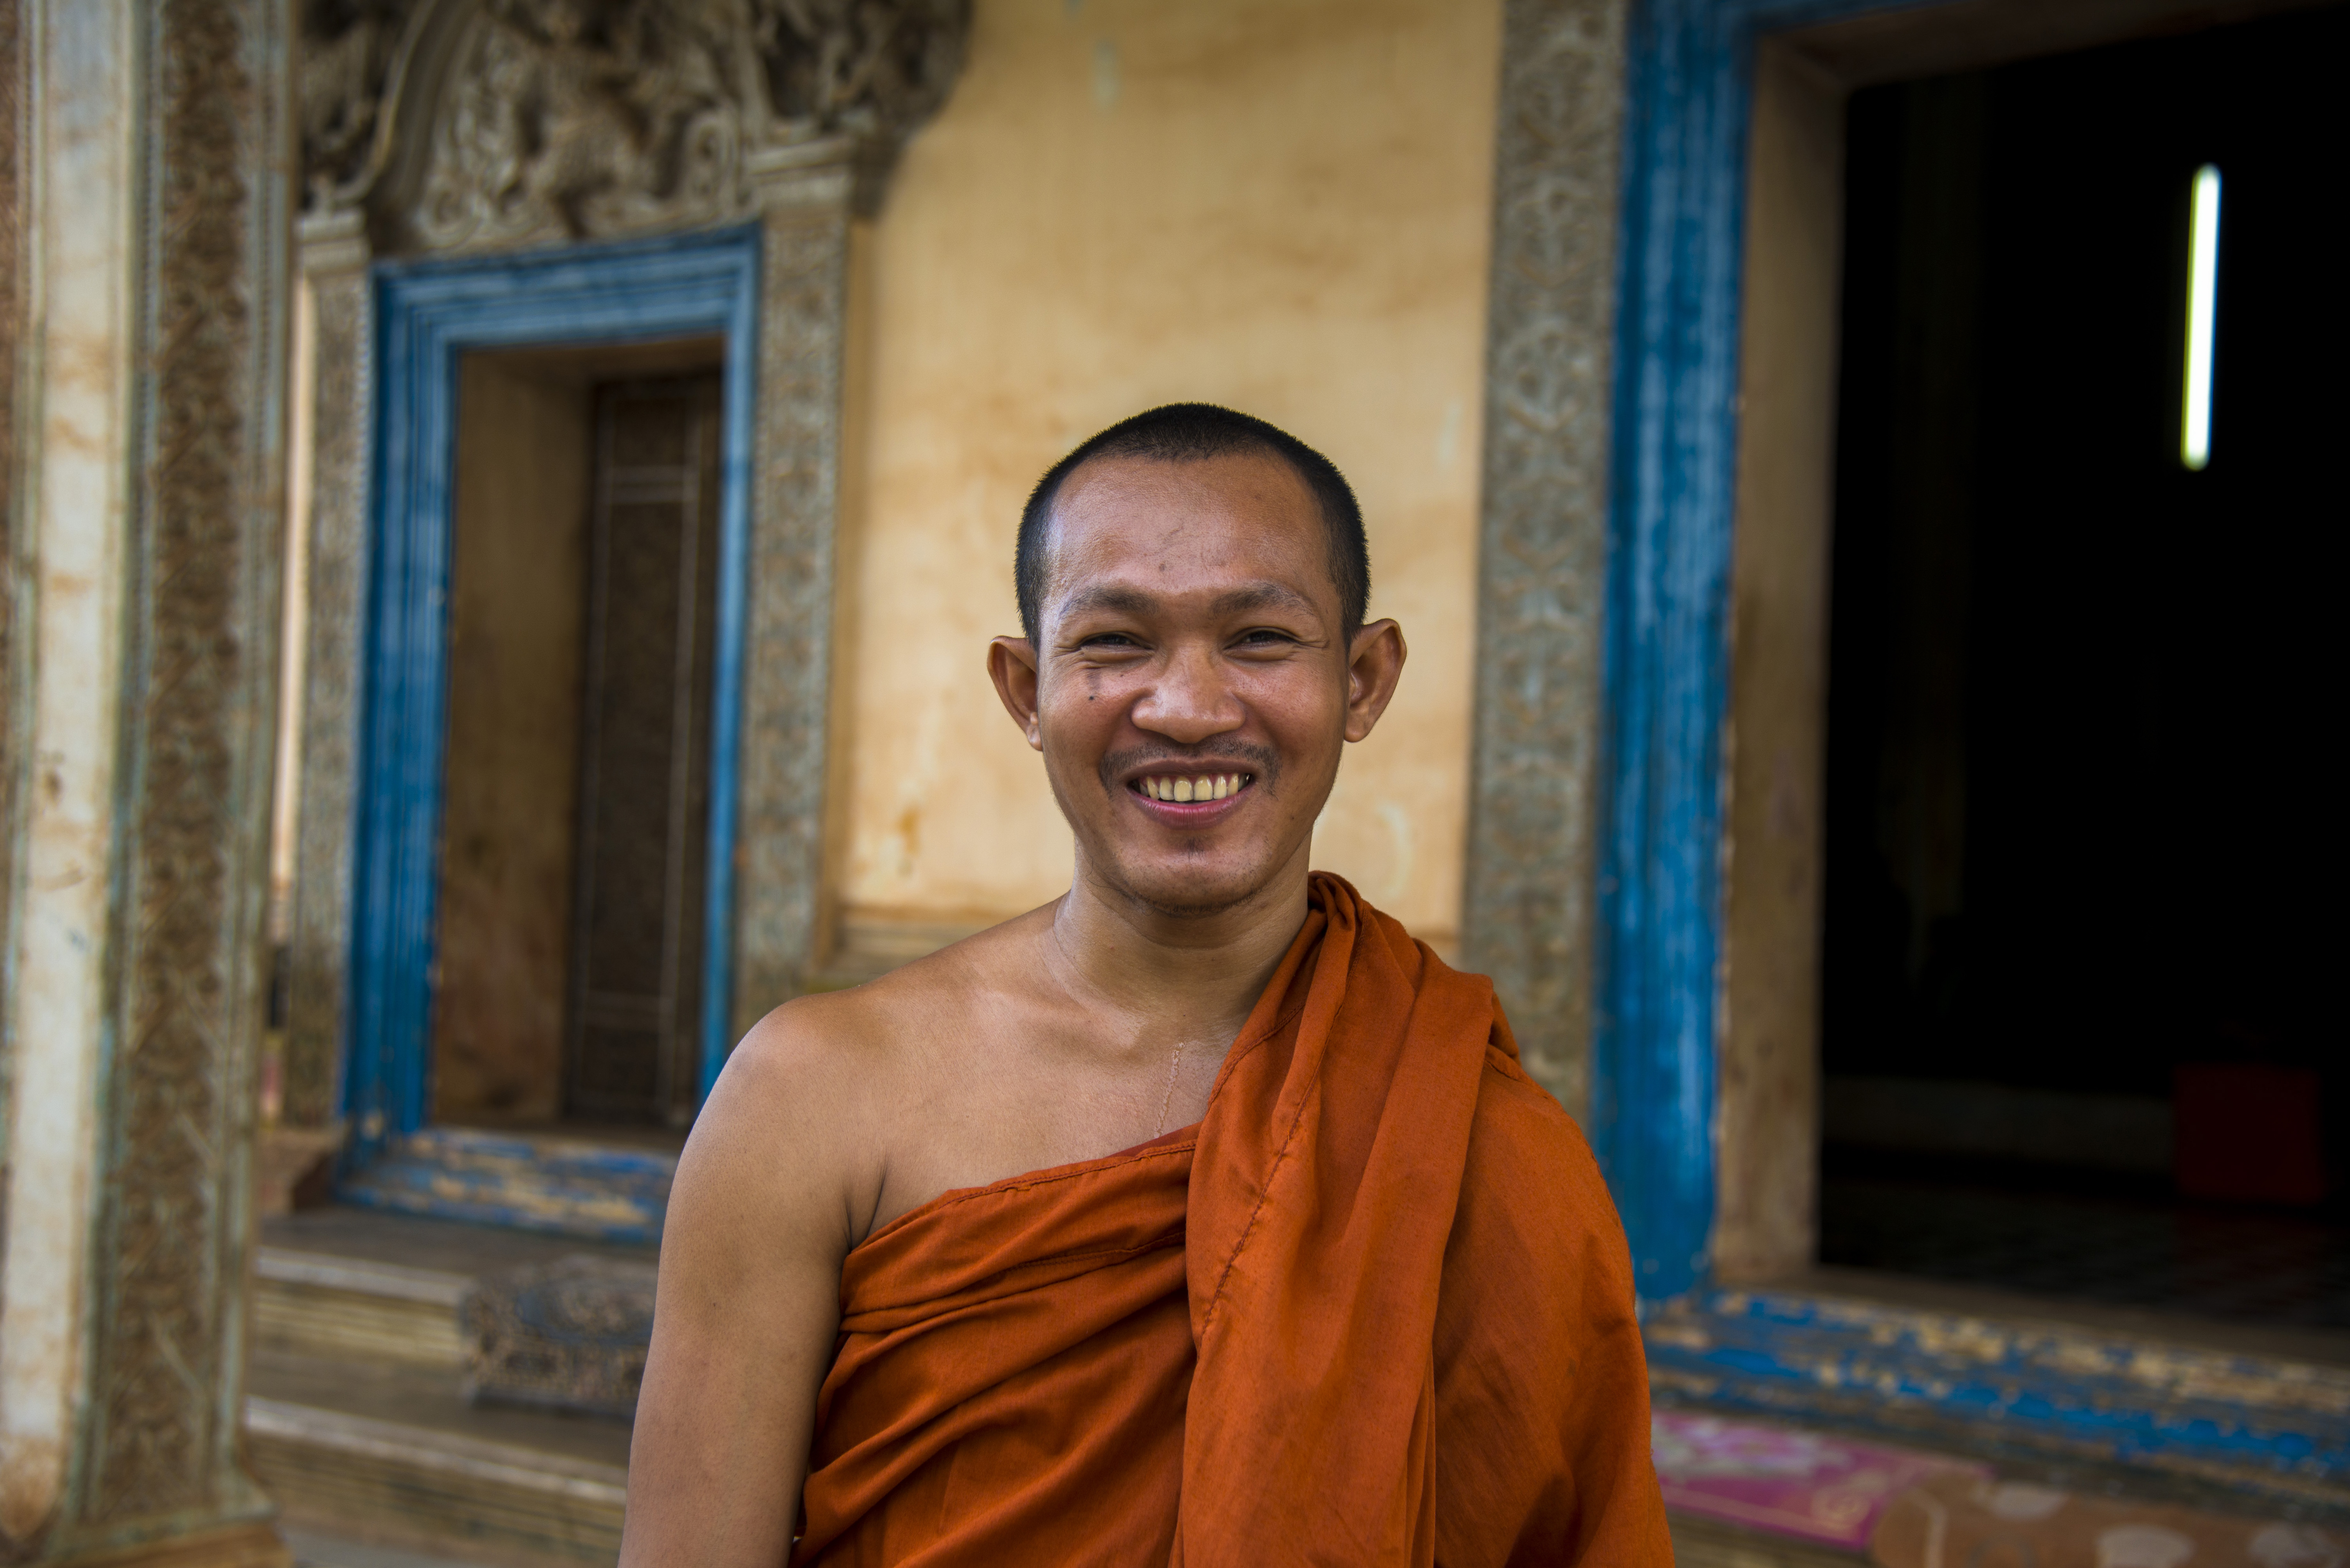 The smile of the monk in Wat Bo pagoda, Siem Reap, Cambodia